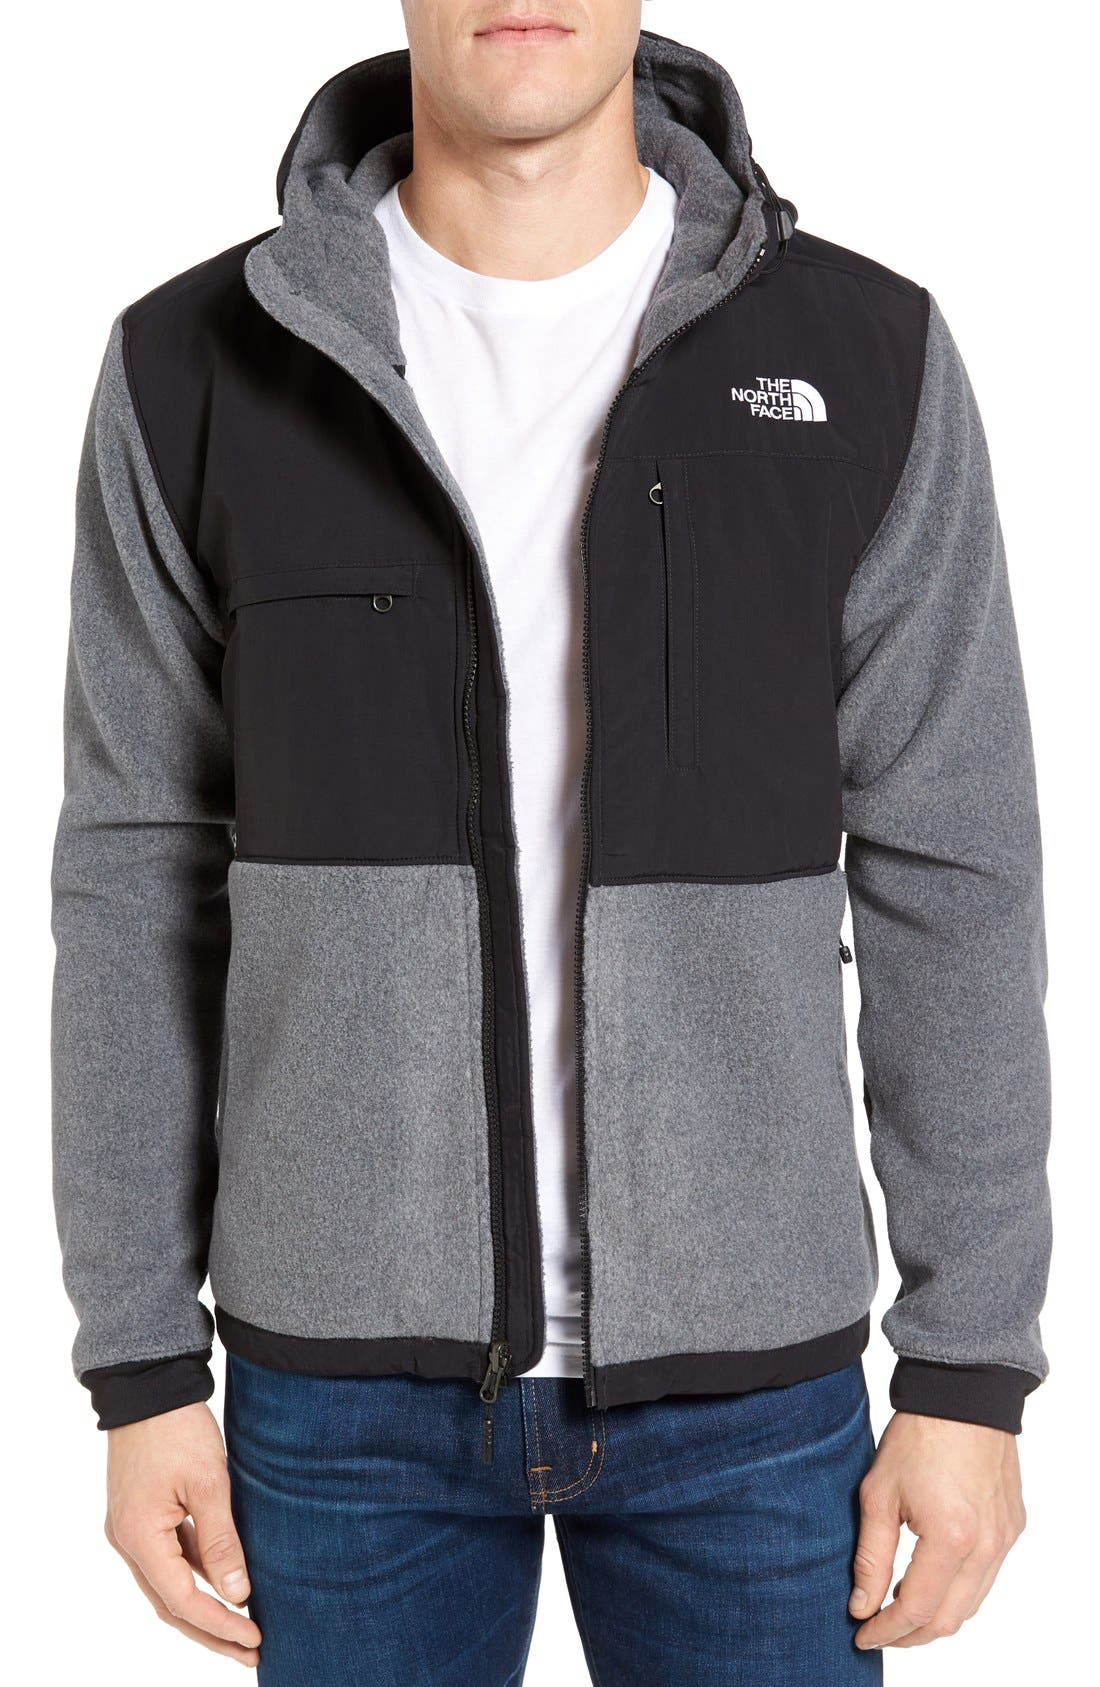 Main Image - The North Face Denali 2 Fleece Hoodie